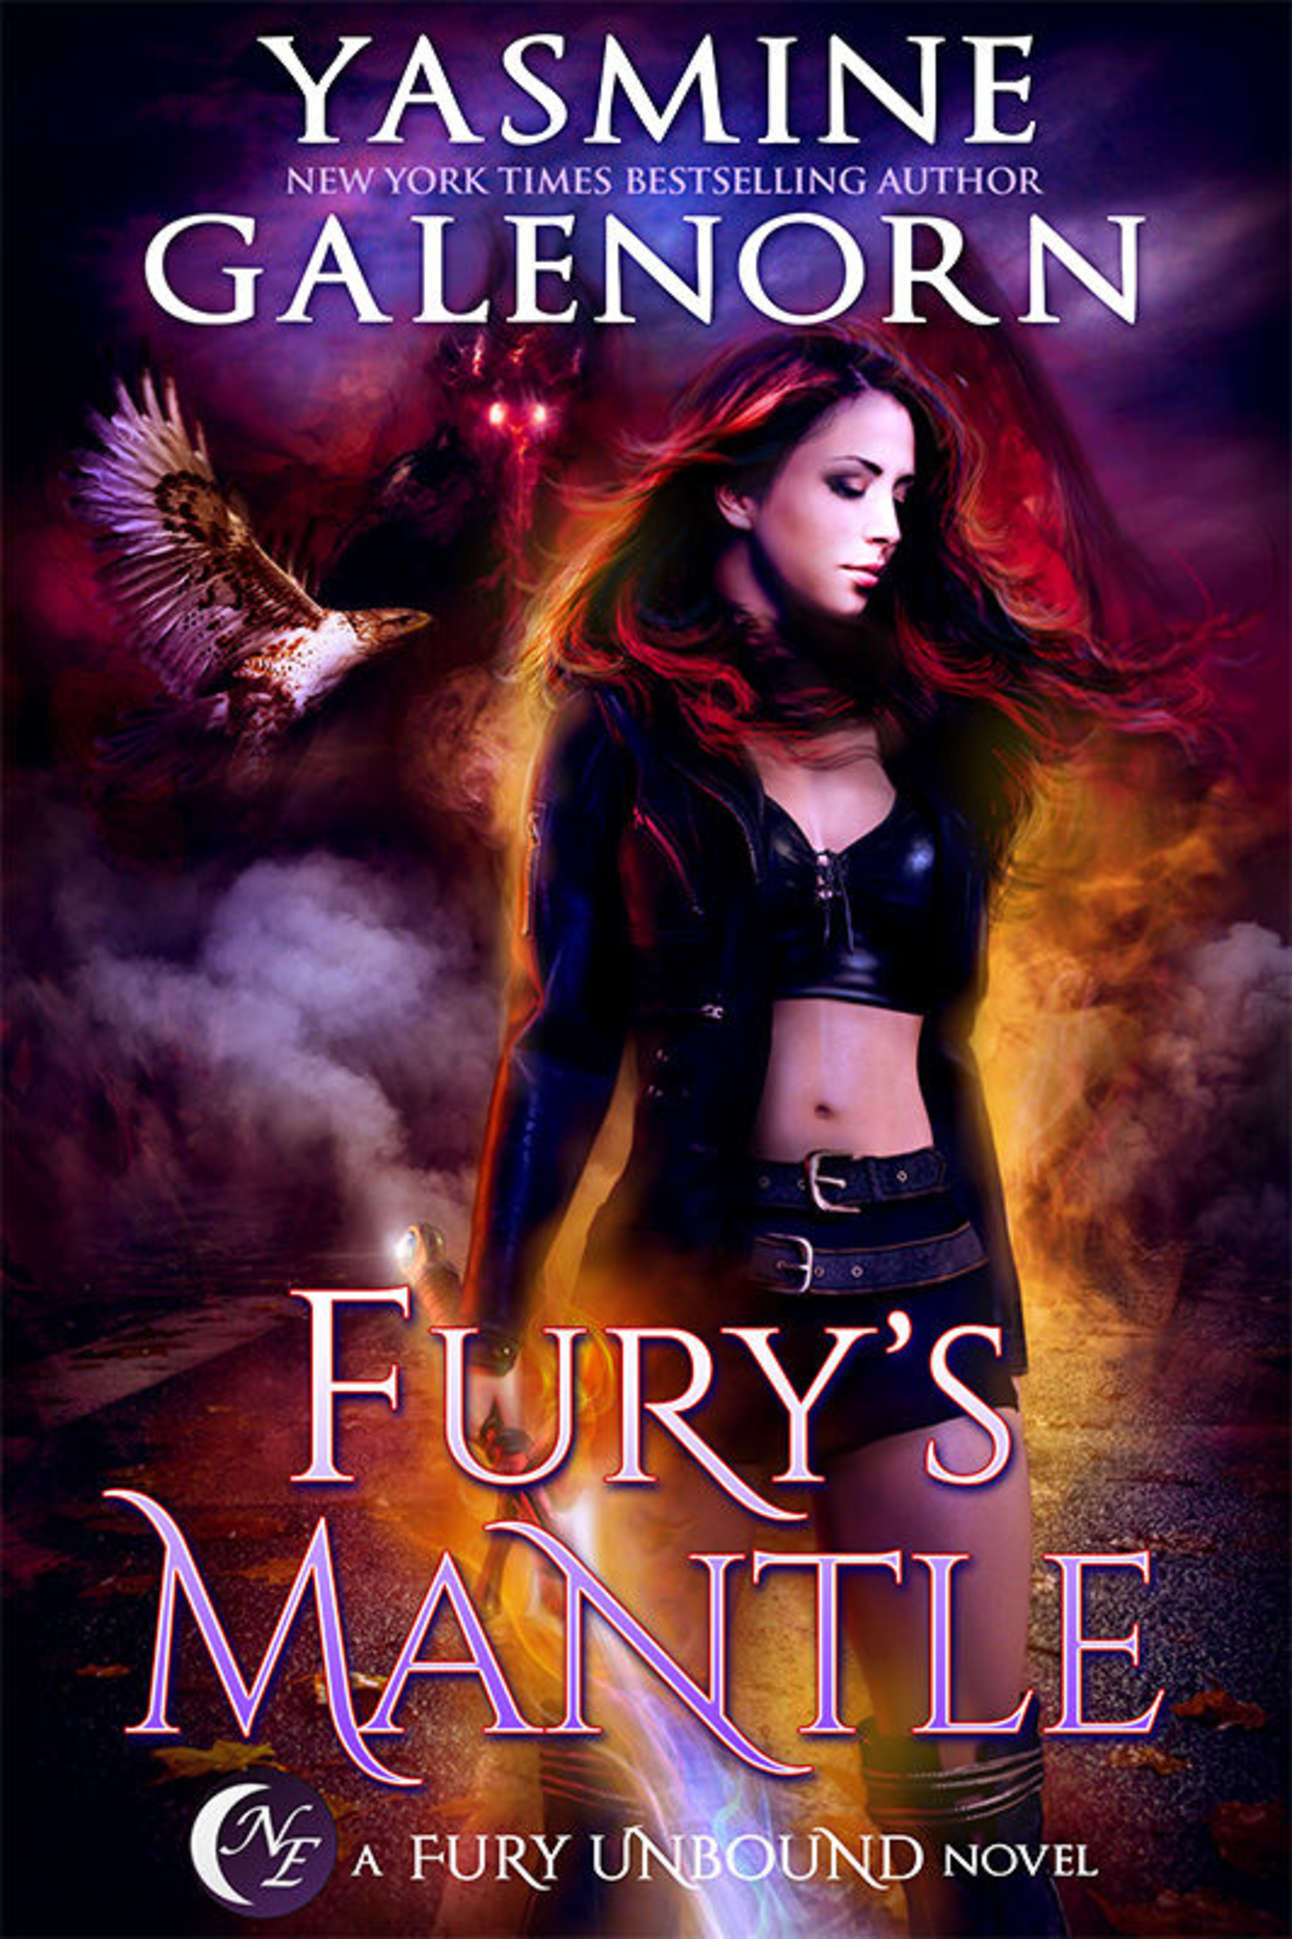 Fury's Mantle